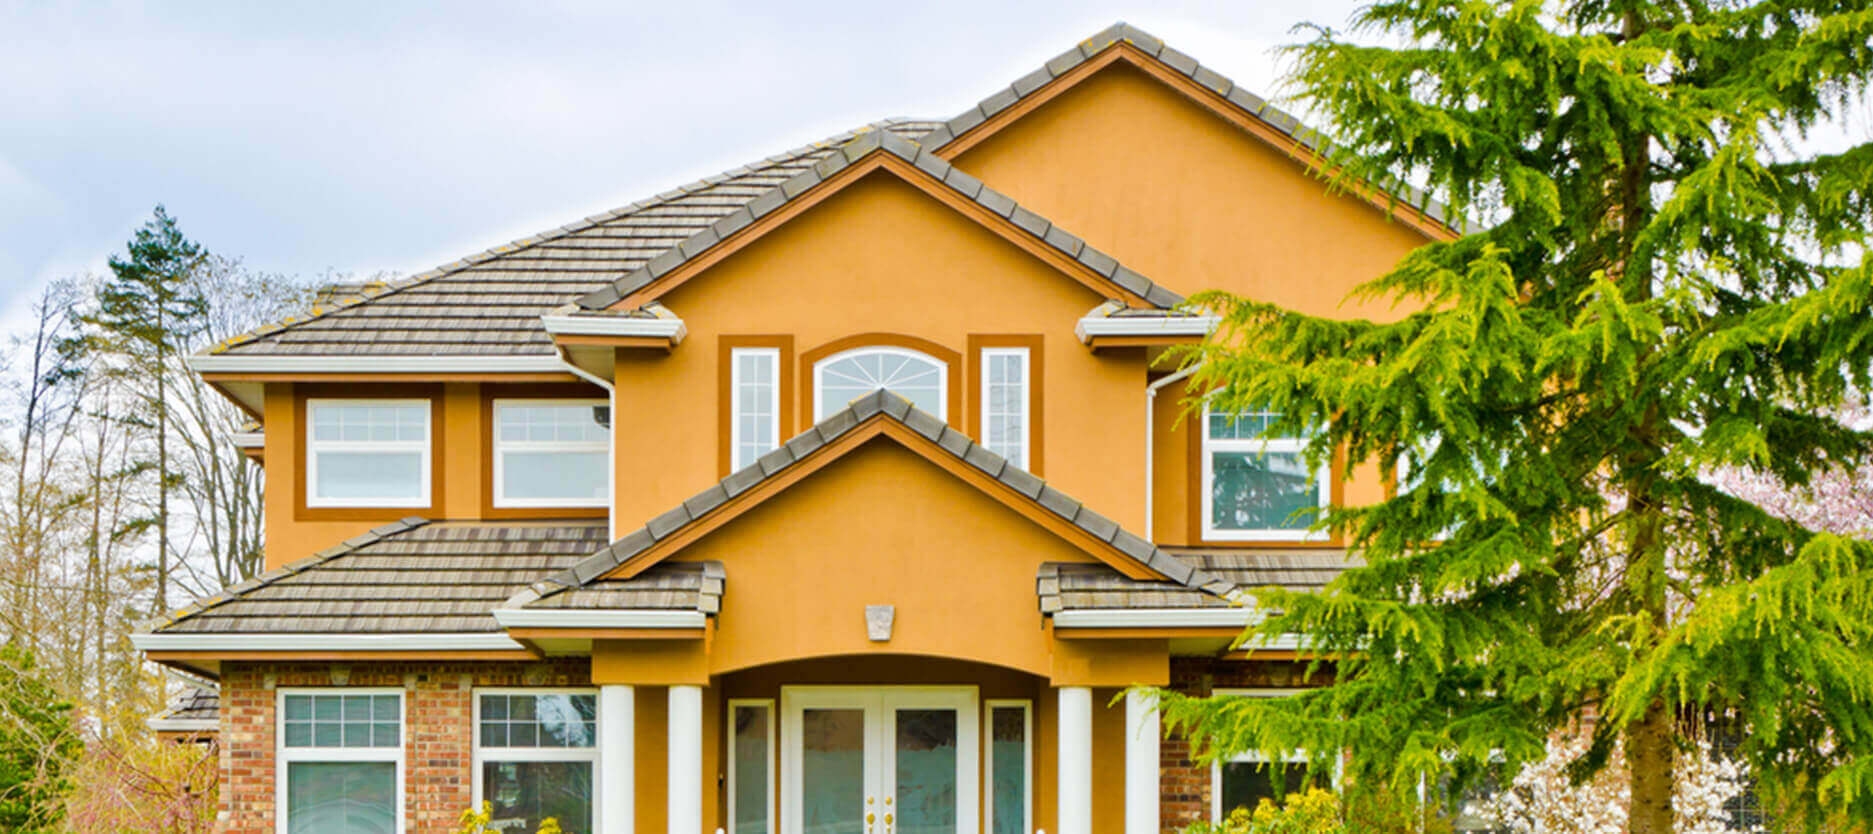 How To Pick The Right Exterior Paint